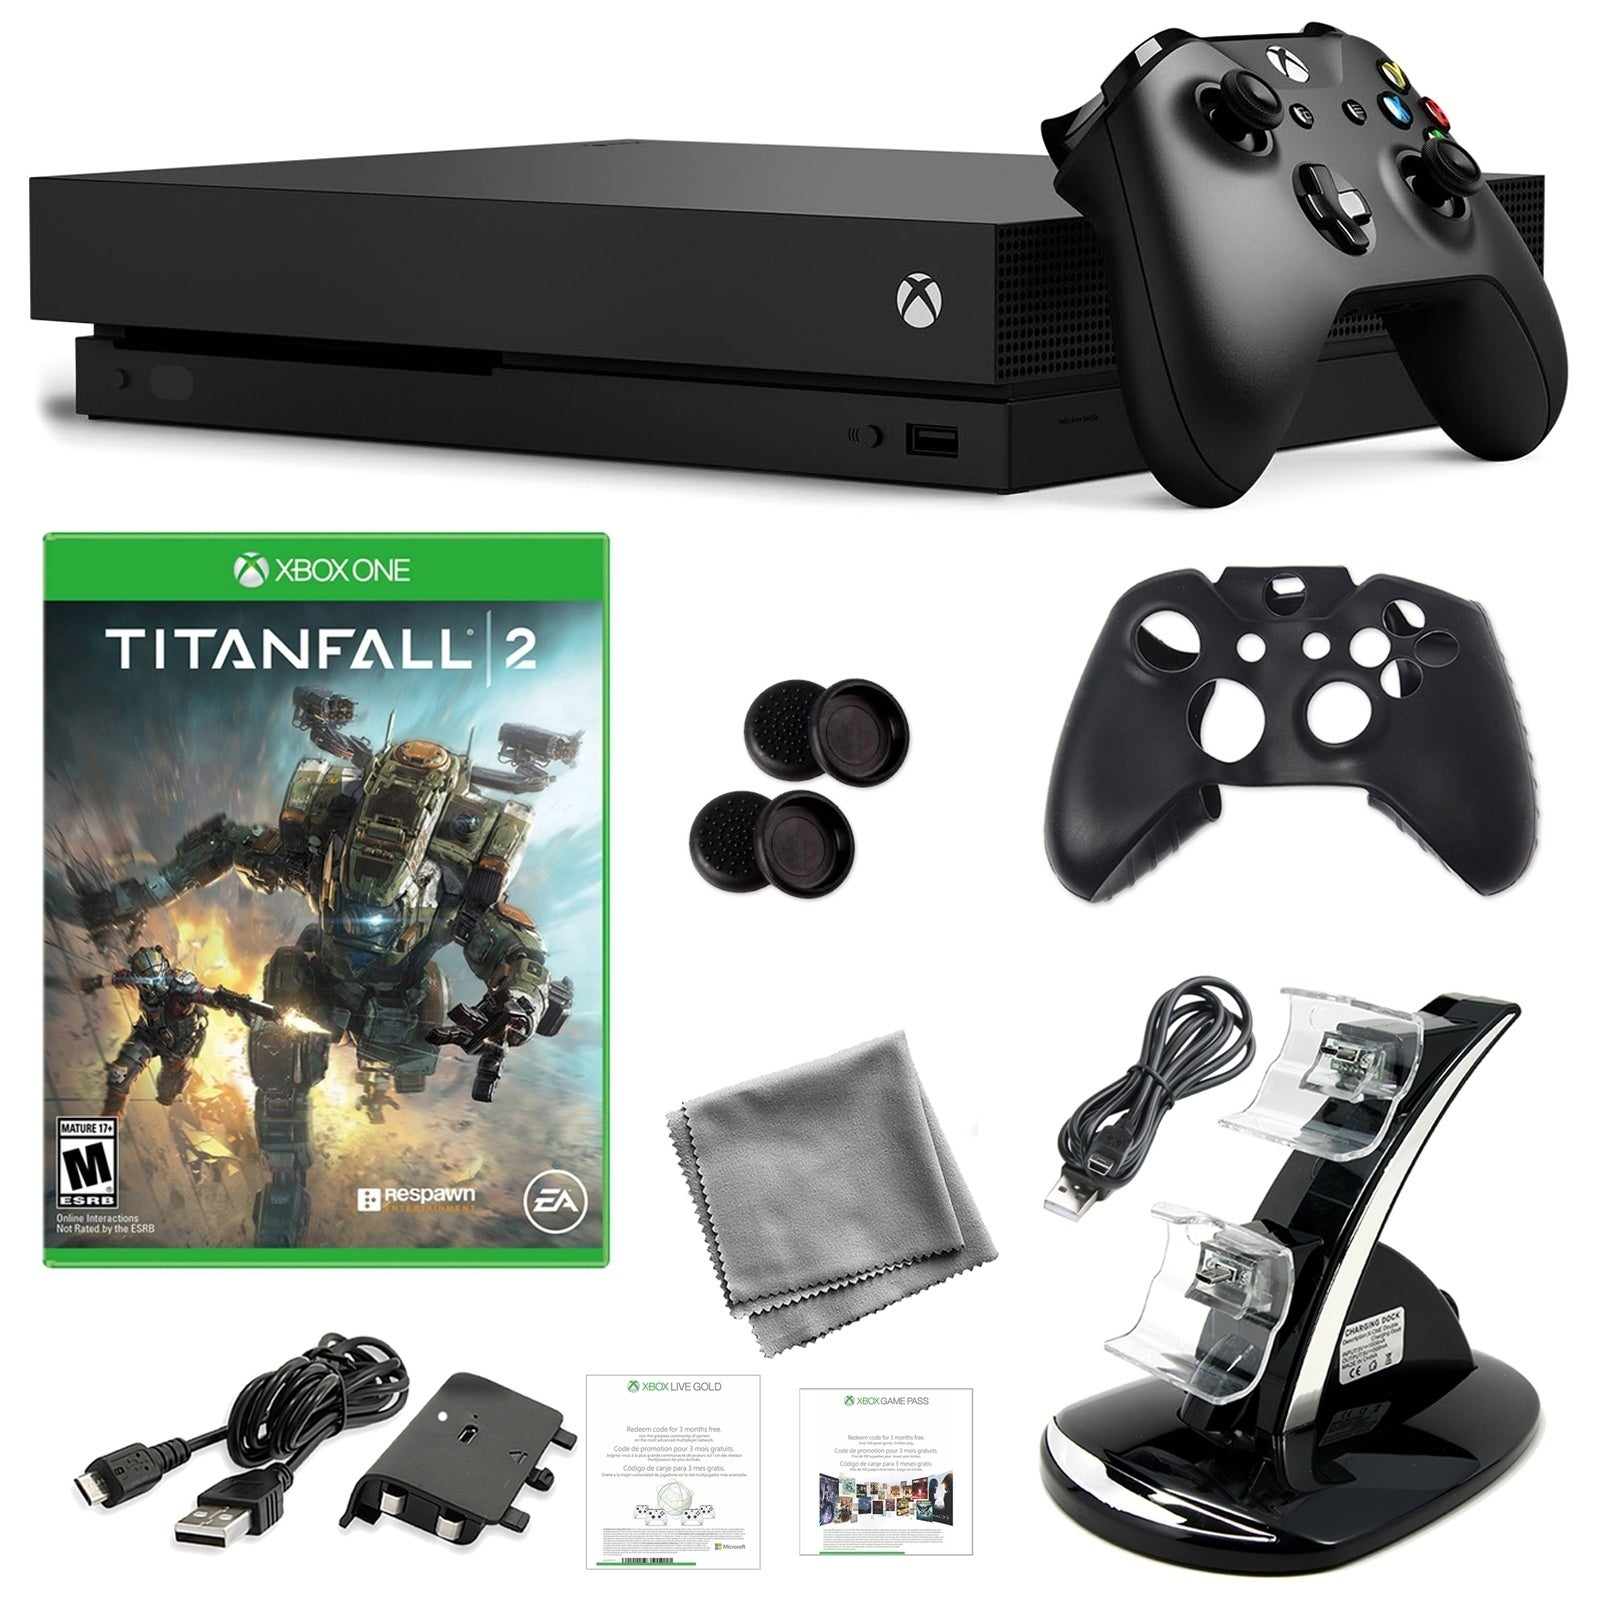 Xbox One X 1TB Console with Titanfall 2 and Kit - N/A - N/A